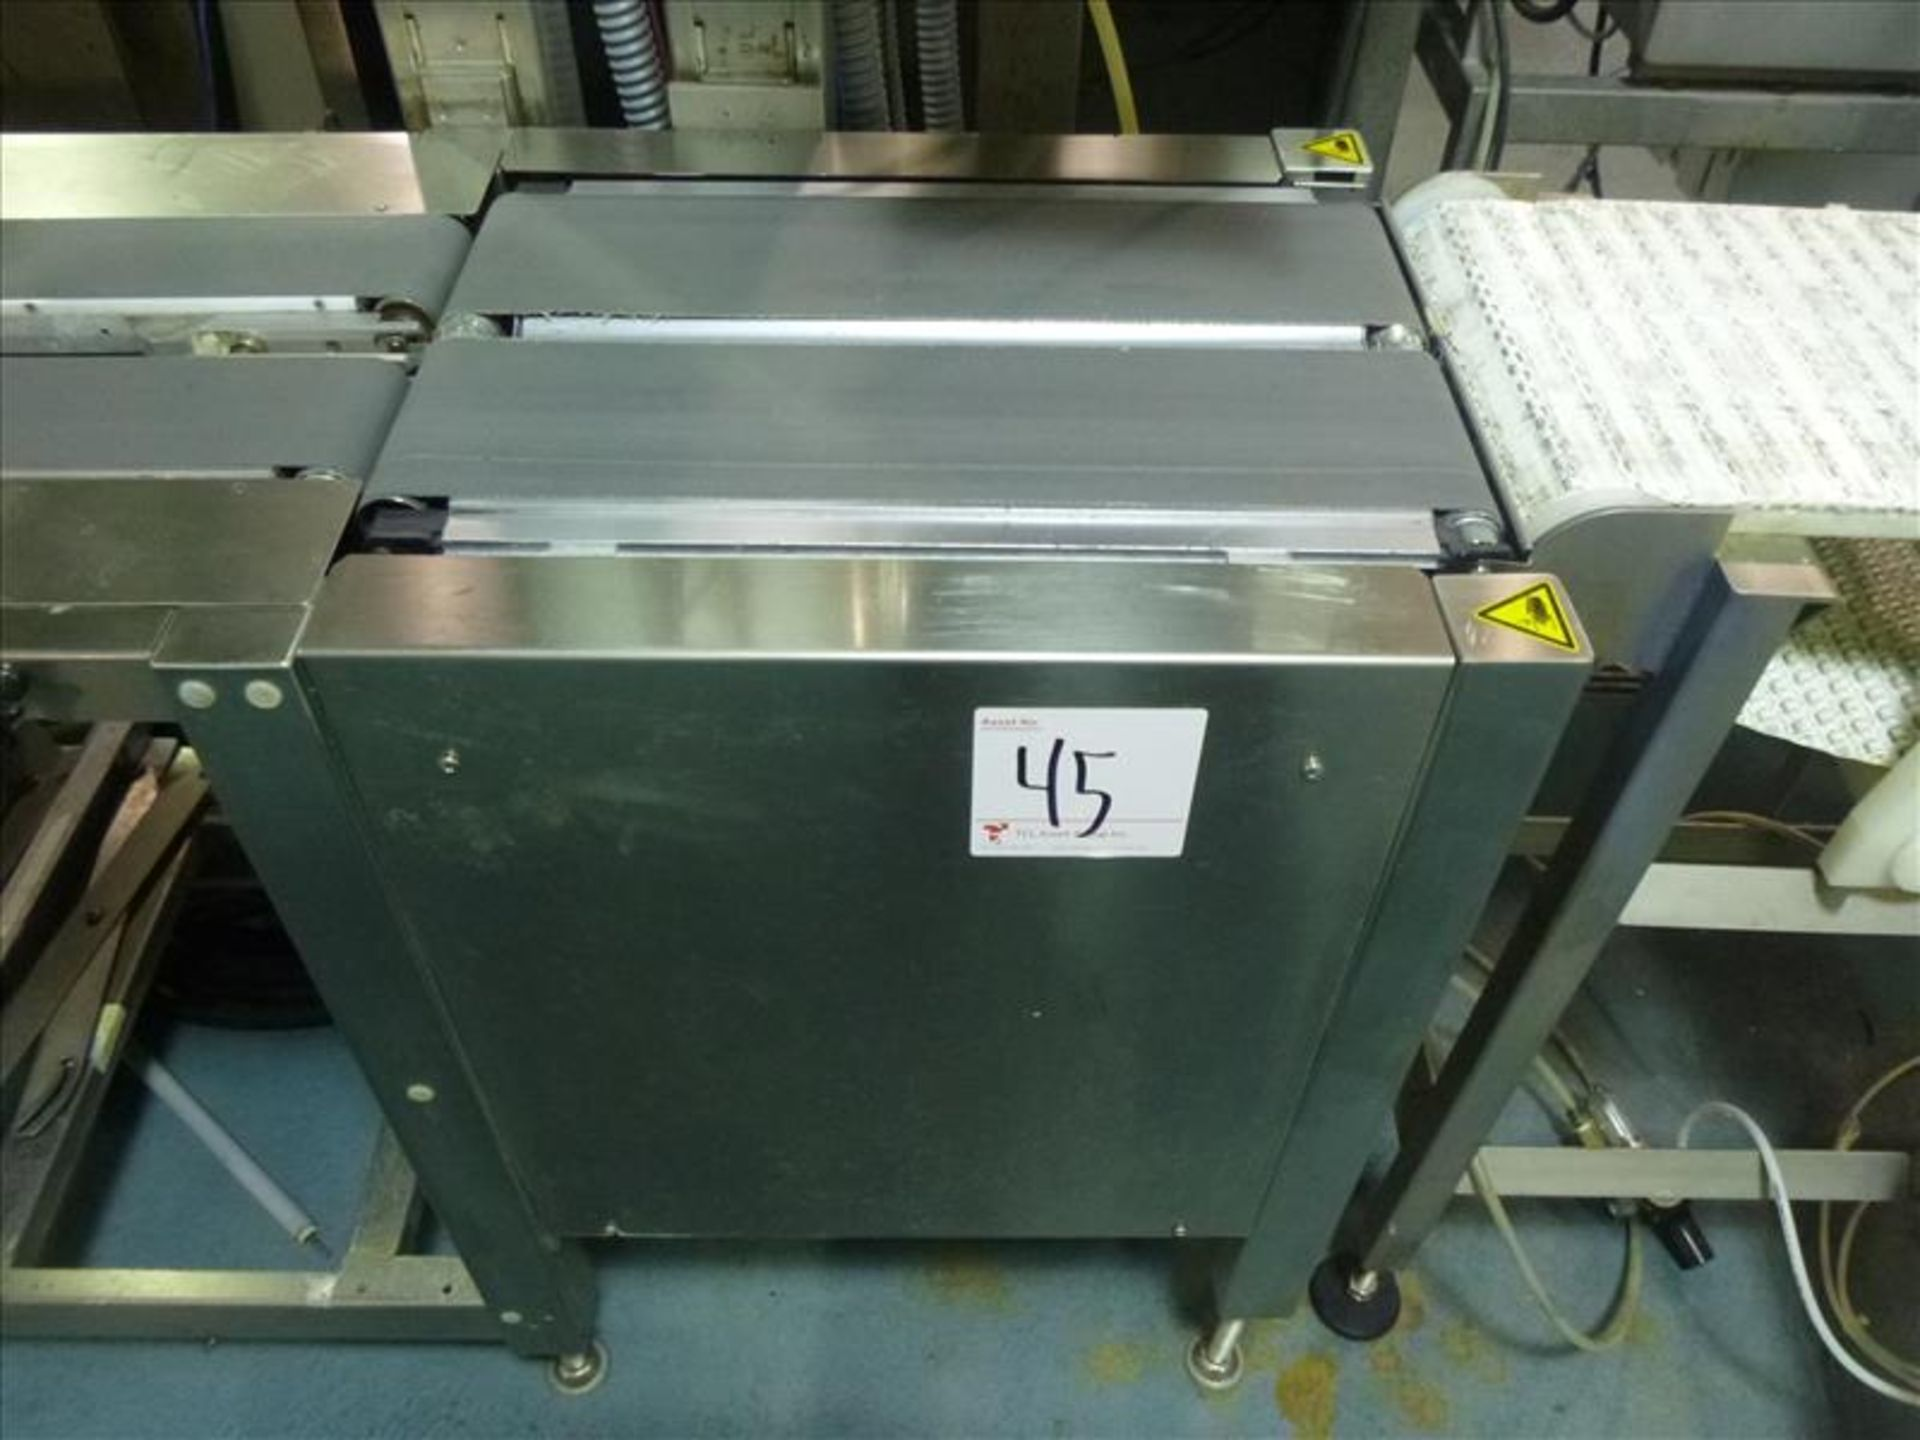 Lot 45 - Bizerba in-line check-weigher system (SLAVE2) w/ Bizerba GS label printer, ser. no. 1960605 and